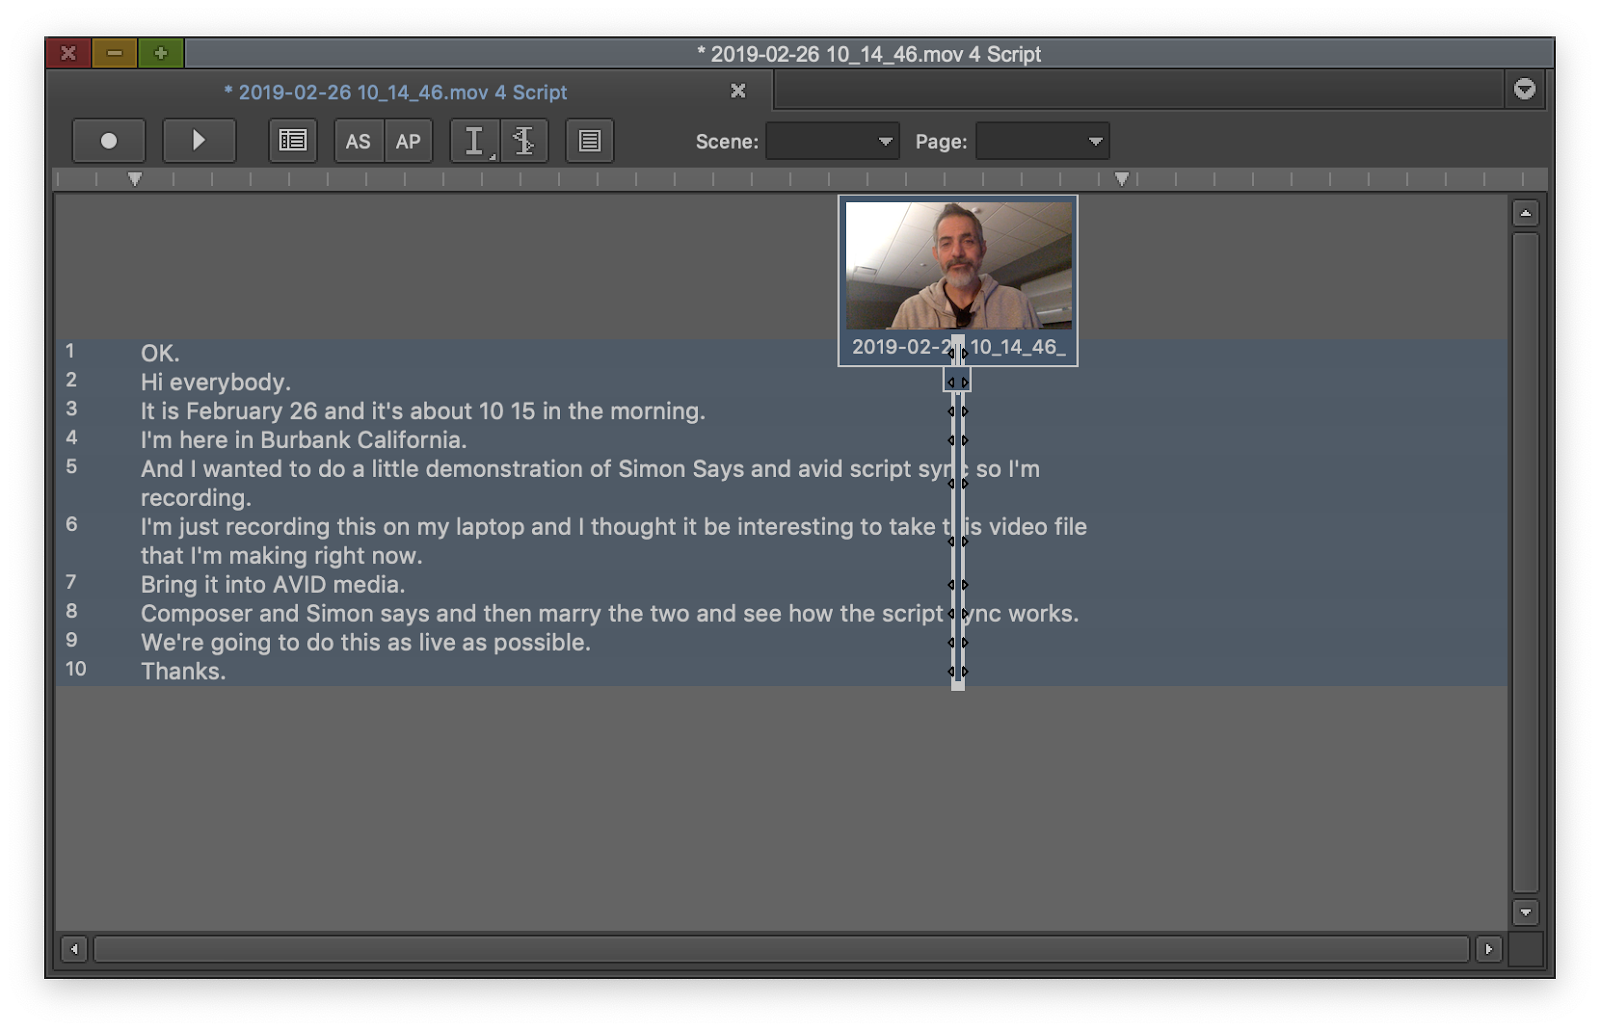 Avid creates sync marks for each line of text